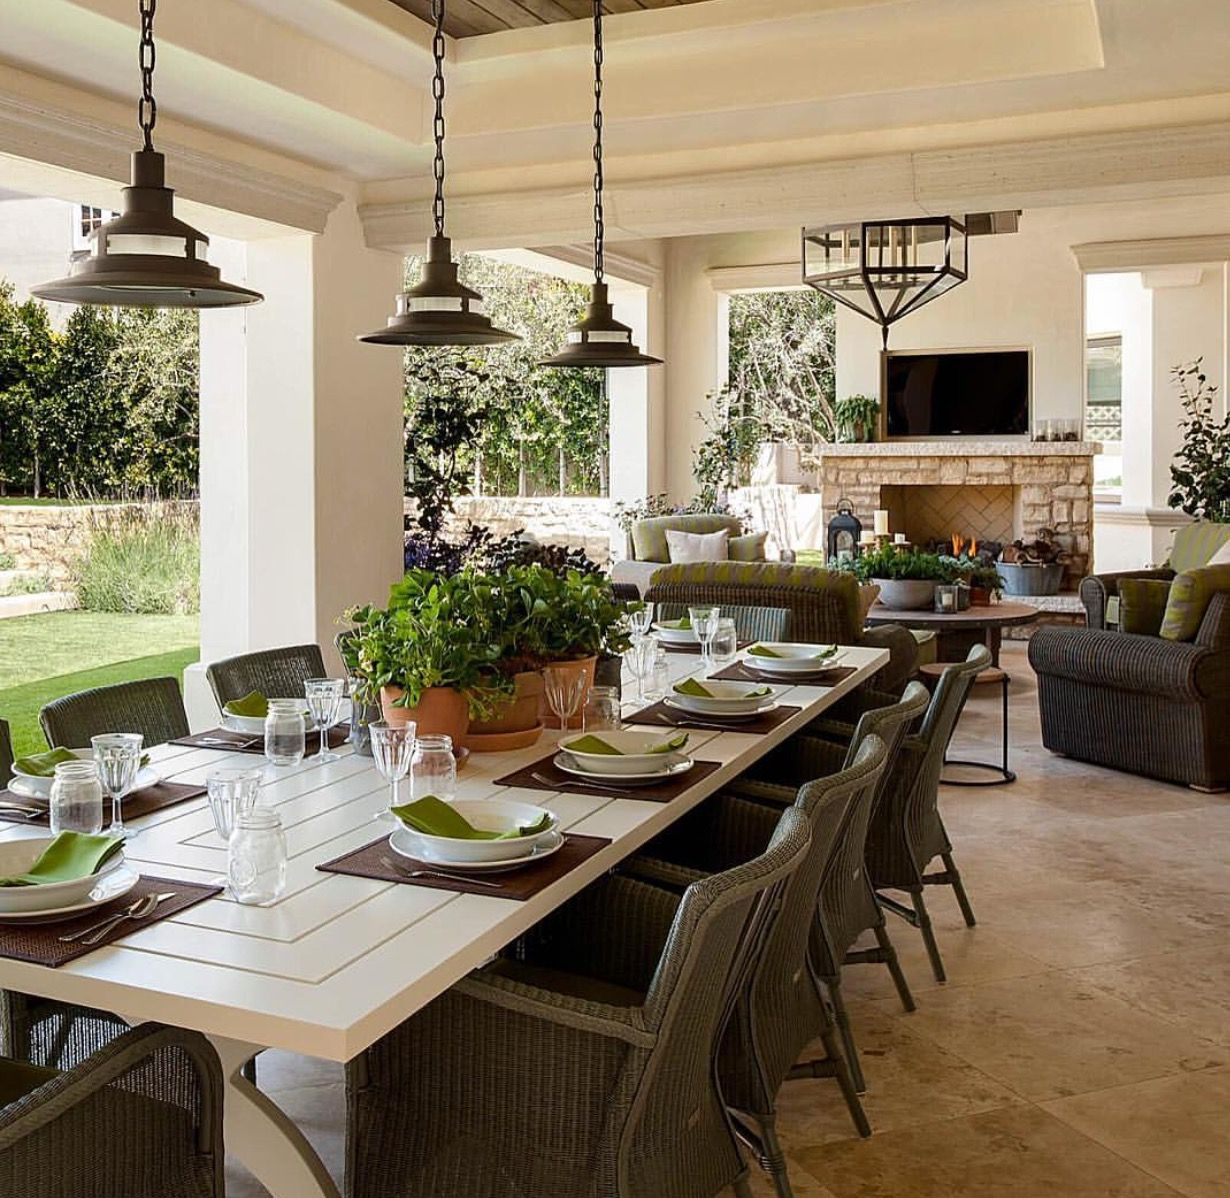 favorite for downstairs outdoor dining room austin stone fireplace outdoor dining room on outdoor kitchen and living space id=25989